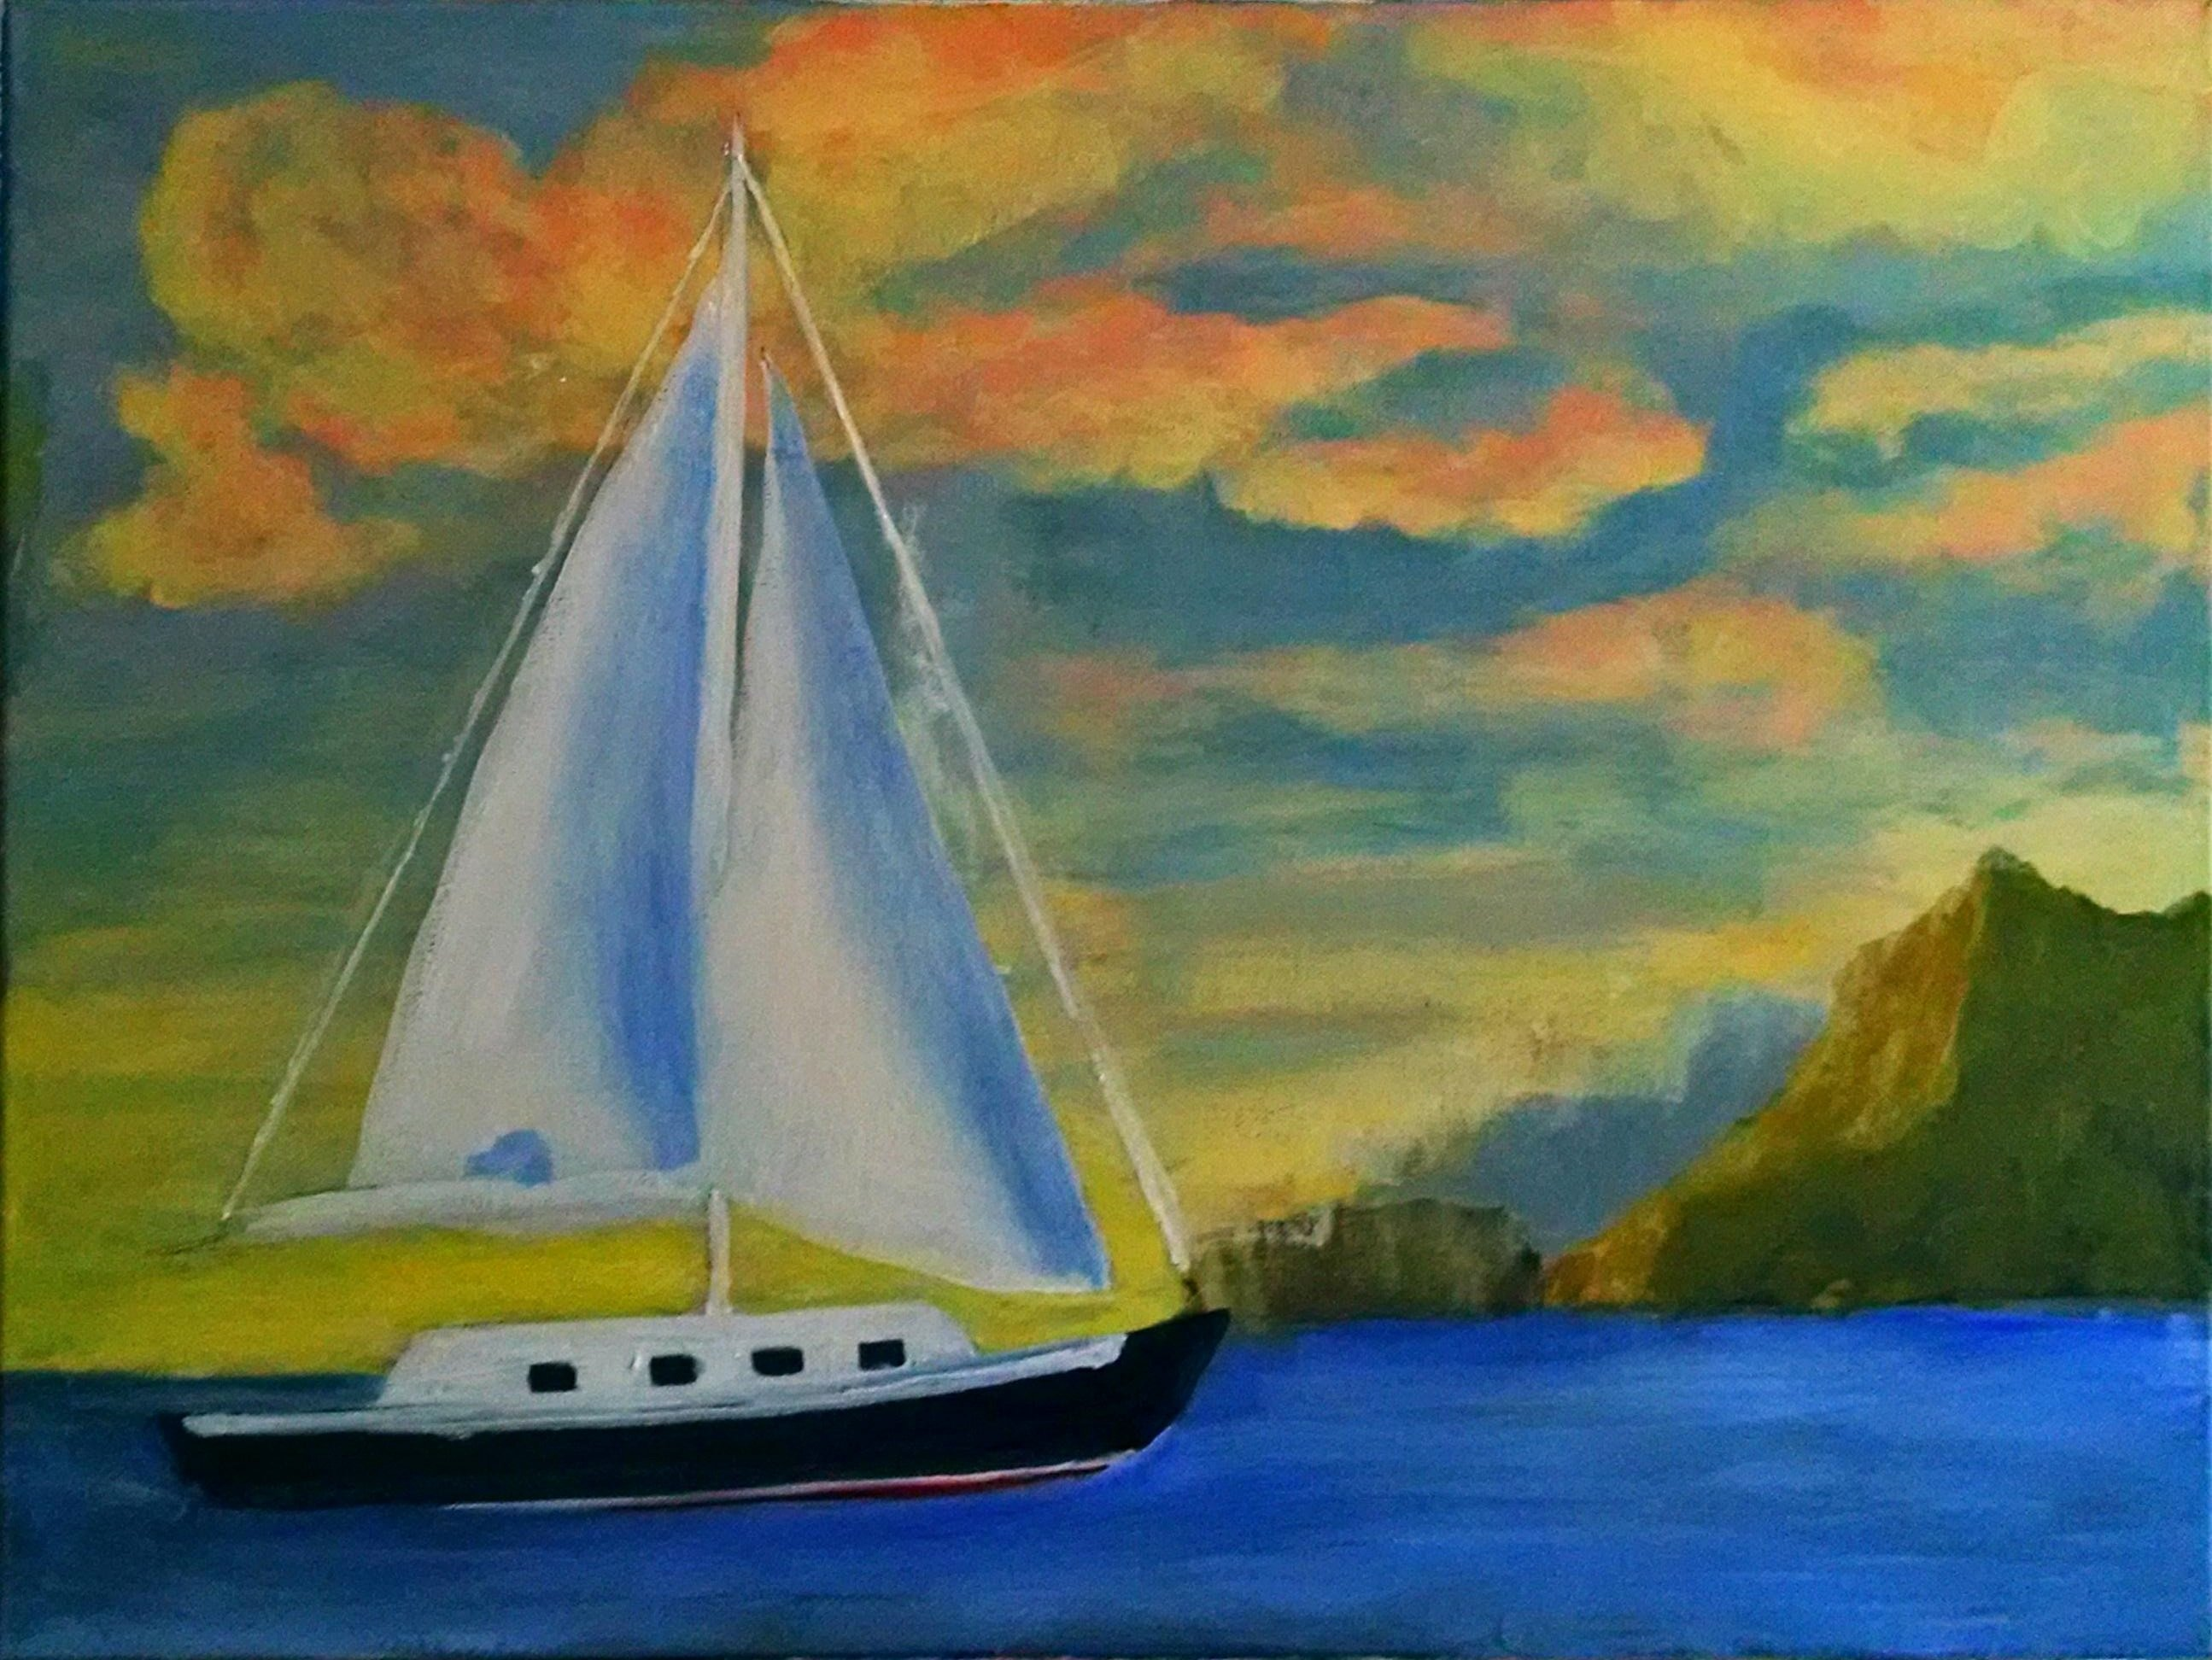 2nd Art Show Exercise - Sailboats/Seascape-sailboat2.jpg